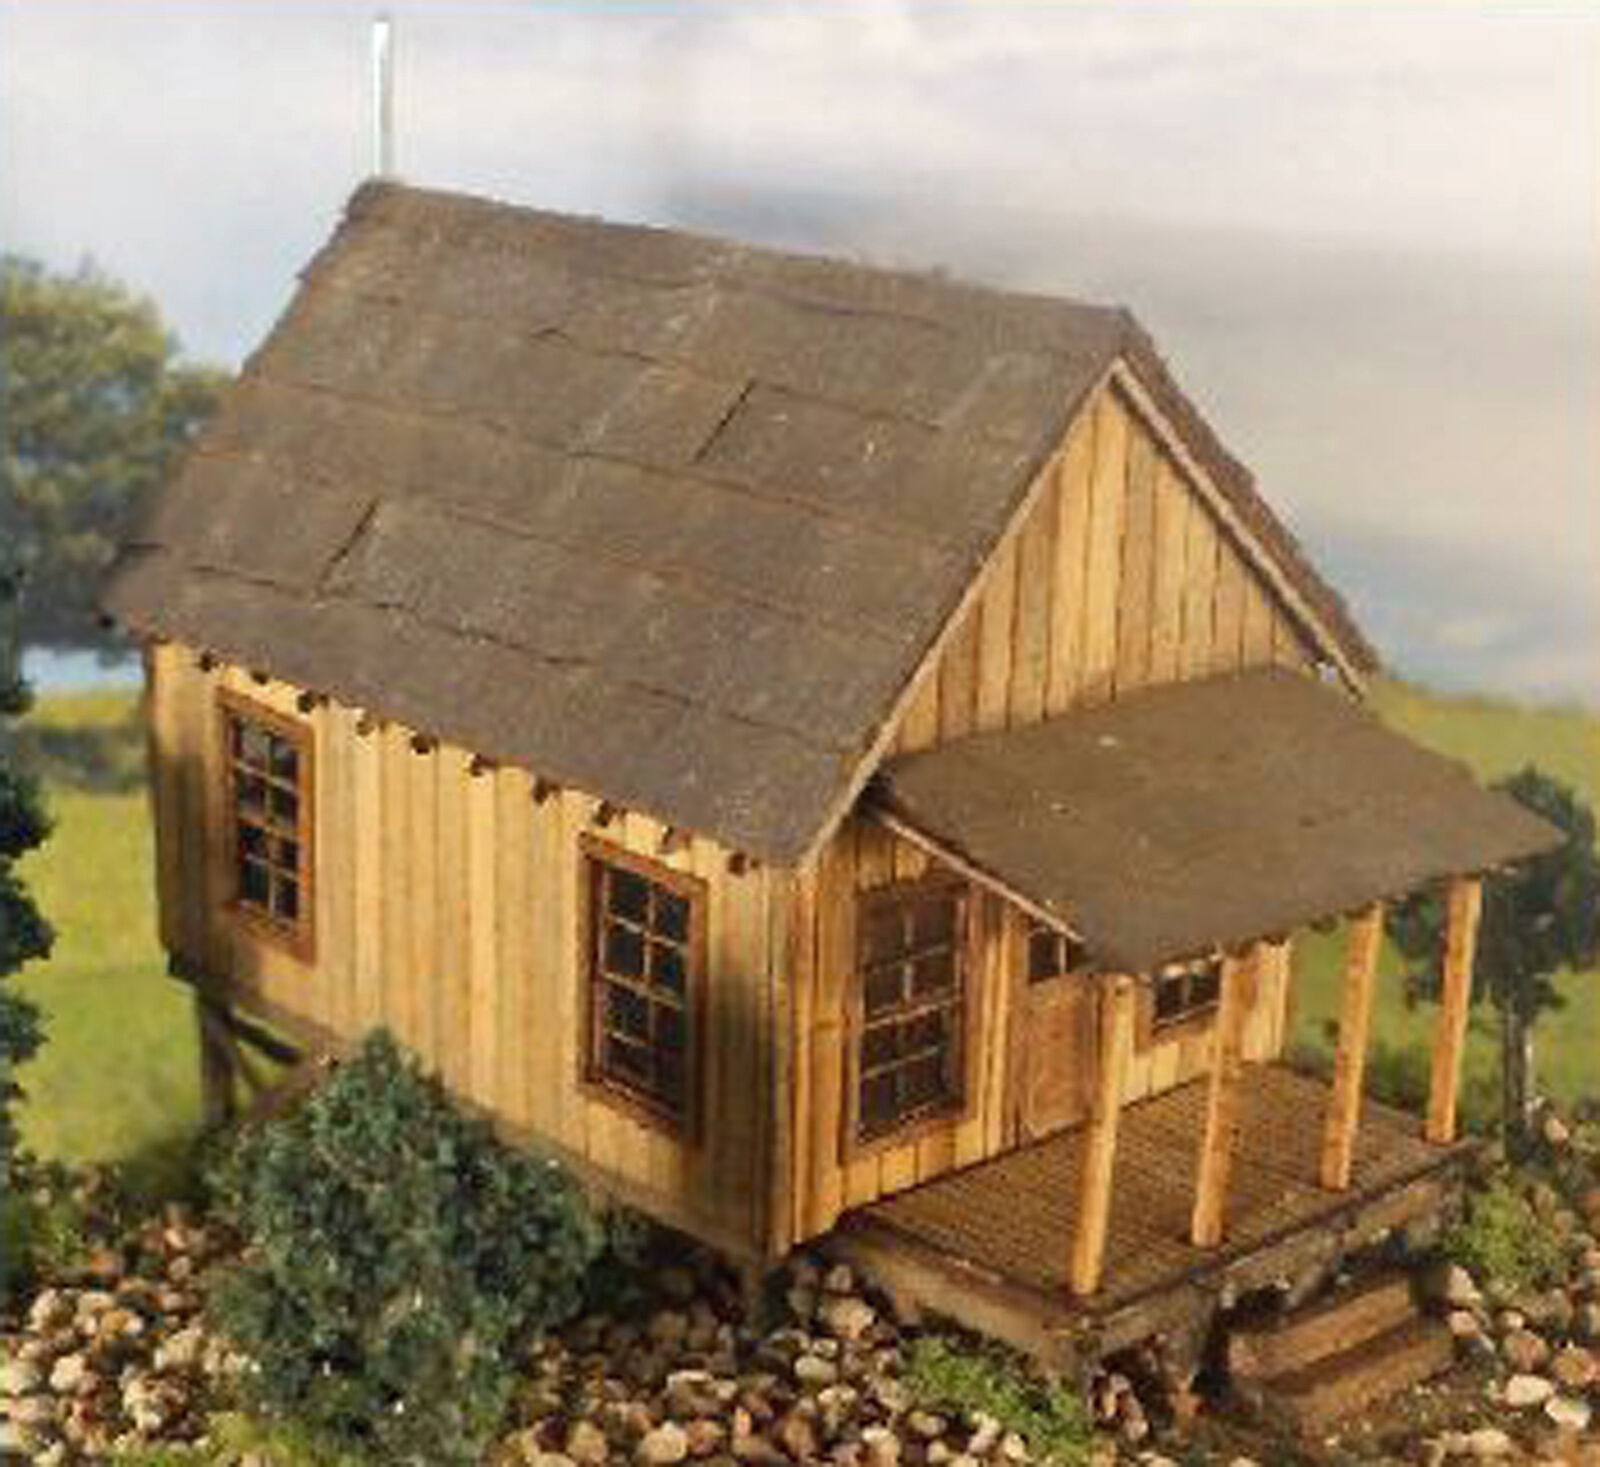 CARL'S CABIN O On30 Model Railroad Structure Unpainted Wood Laser Kit RSL1048